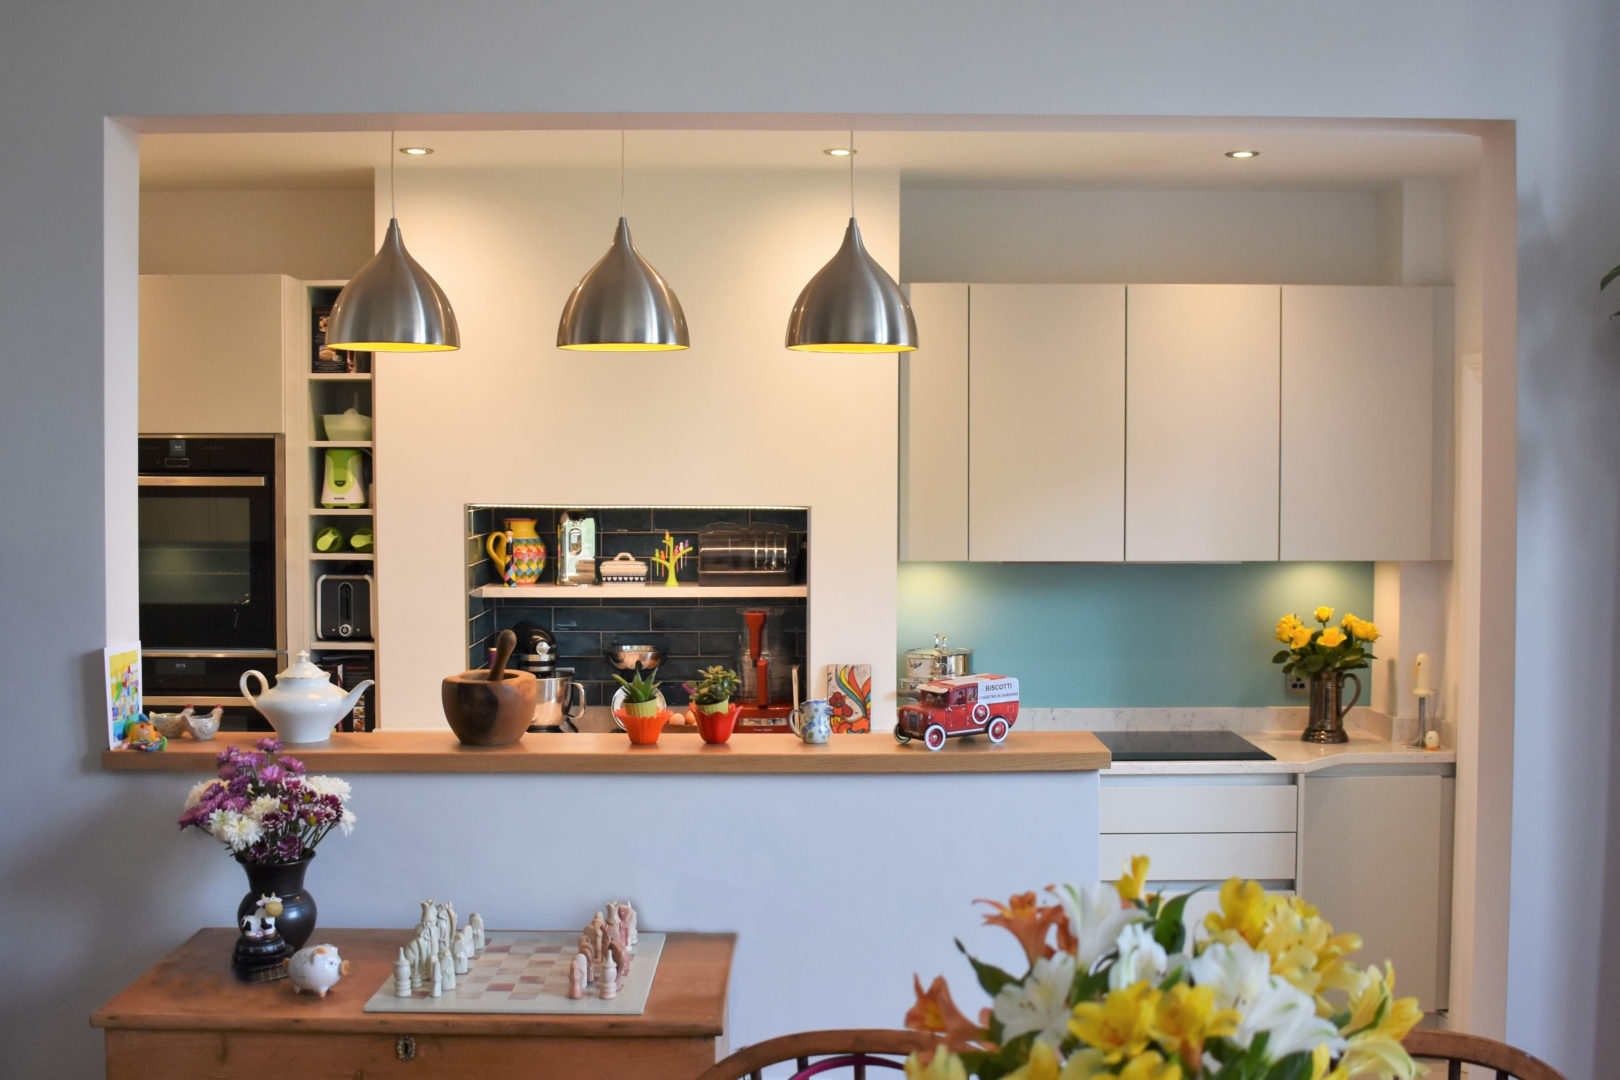 Customer Kitchen - White Minimalist Aesthetic with Silver and Wood Accents